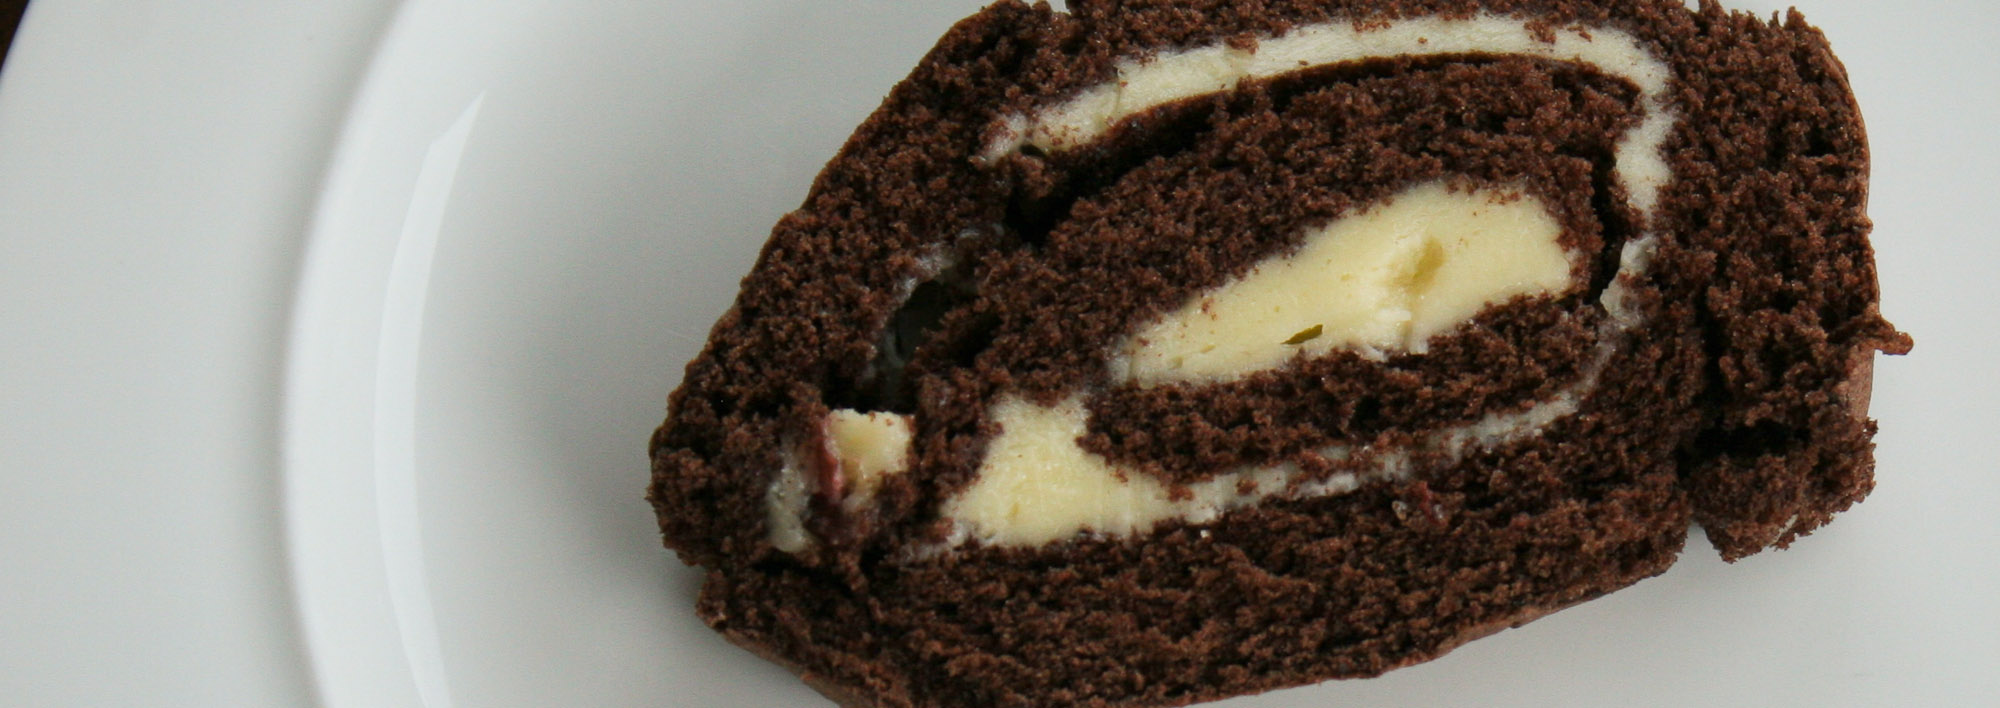 Chocolate roll with buttercream - Italian Notes